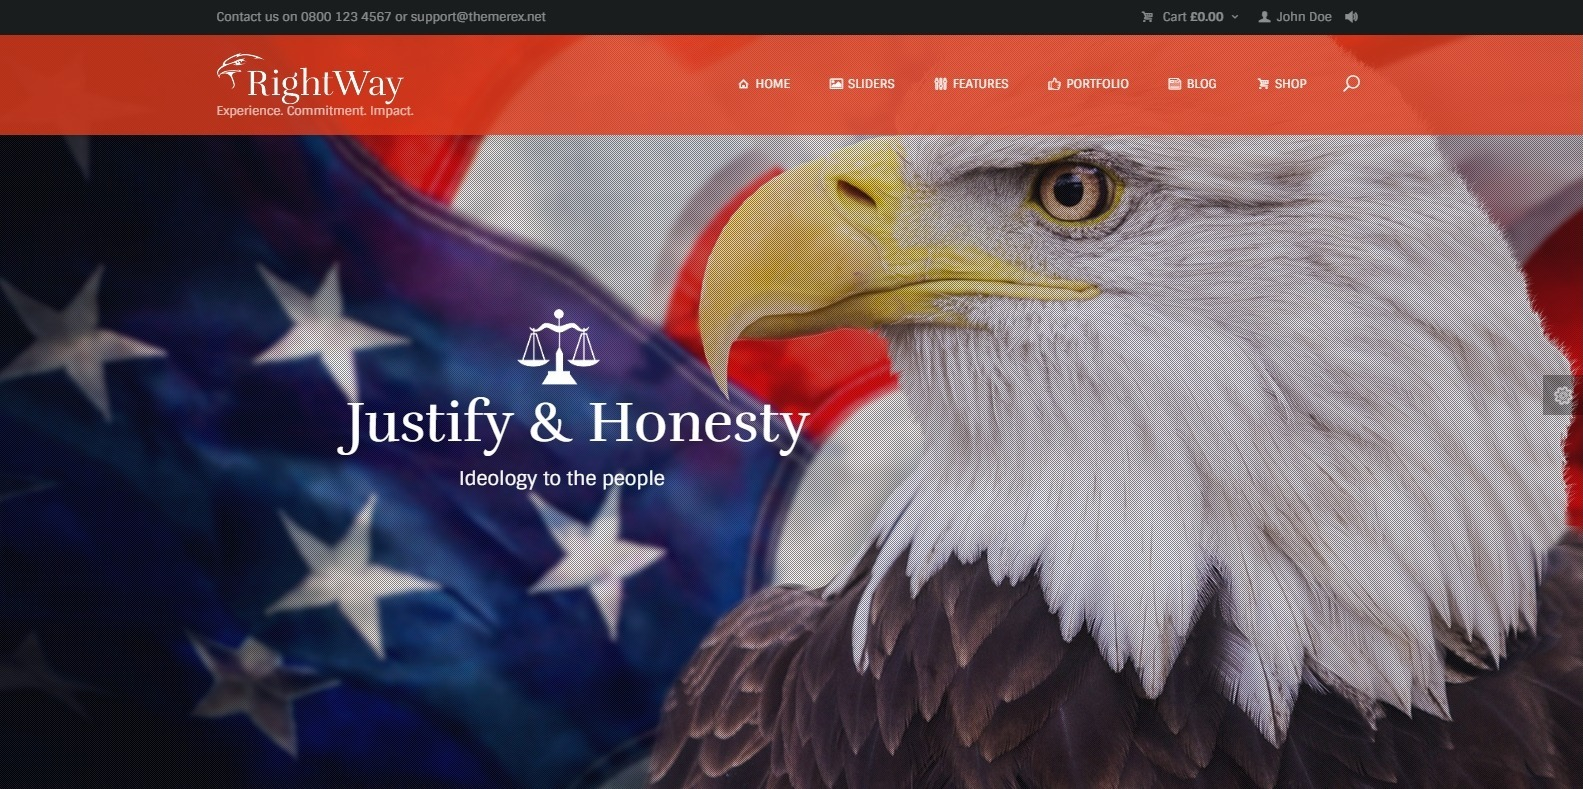 rightway-political-website-template